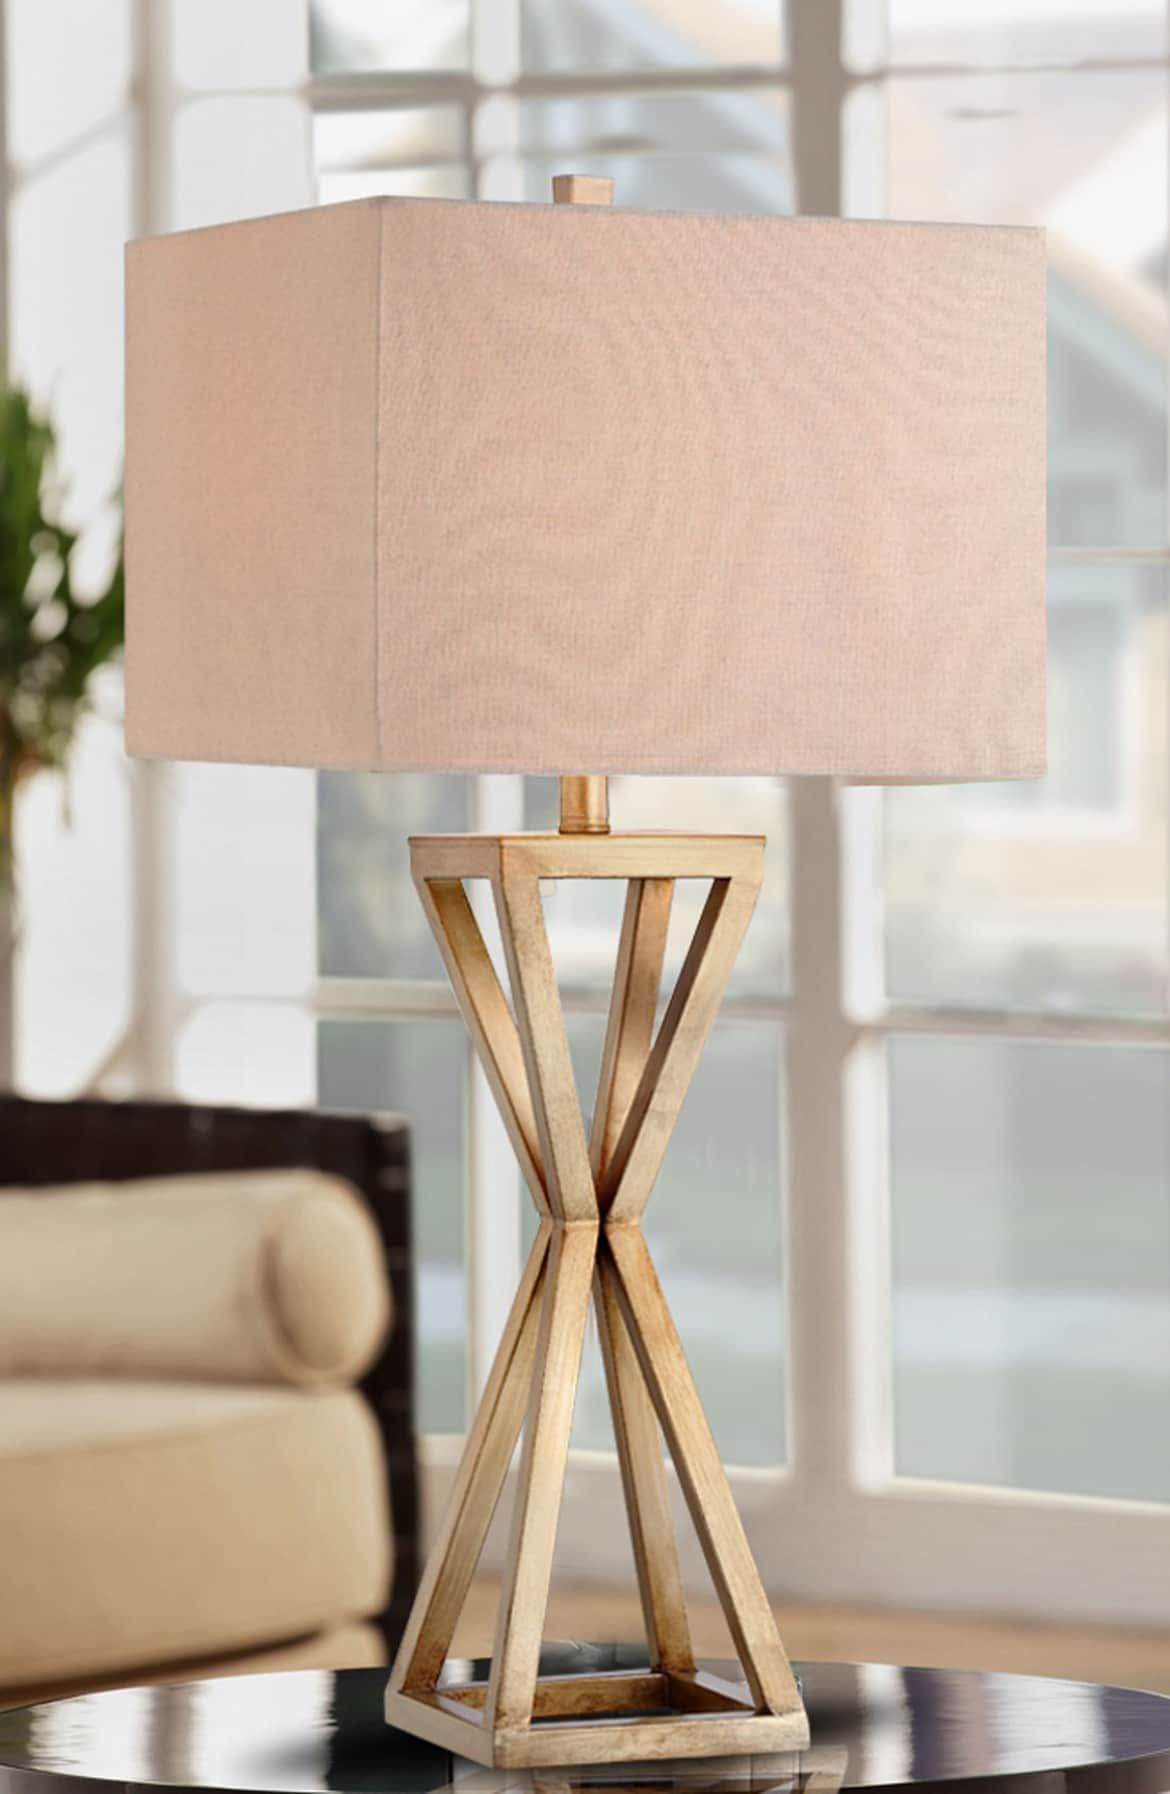 Bulb Included Gold Catalina 19744-001 Contemporary Open Caged Metal Table Lamp with Natural Linen Rectangular Shade